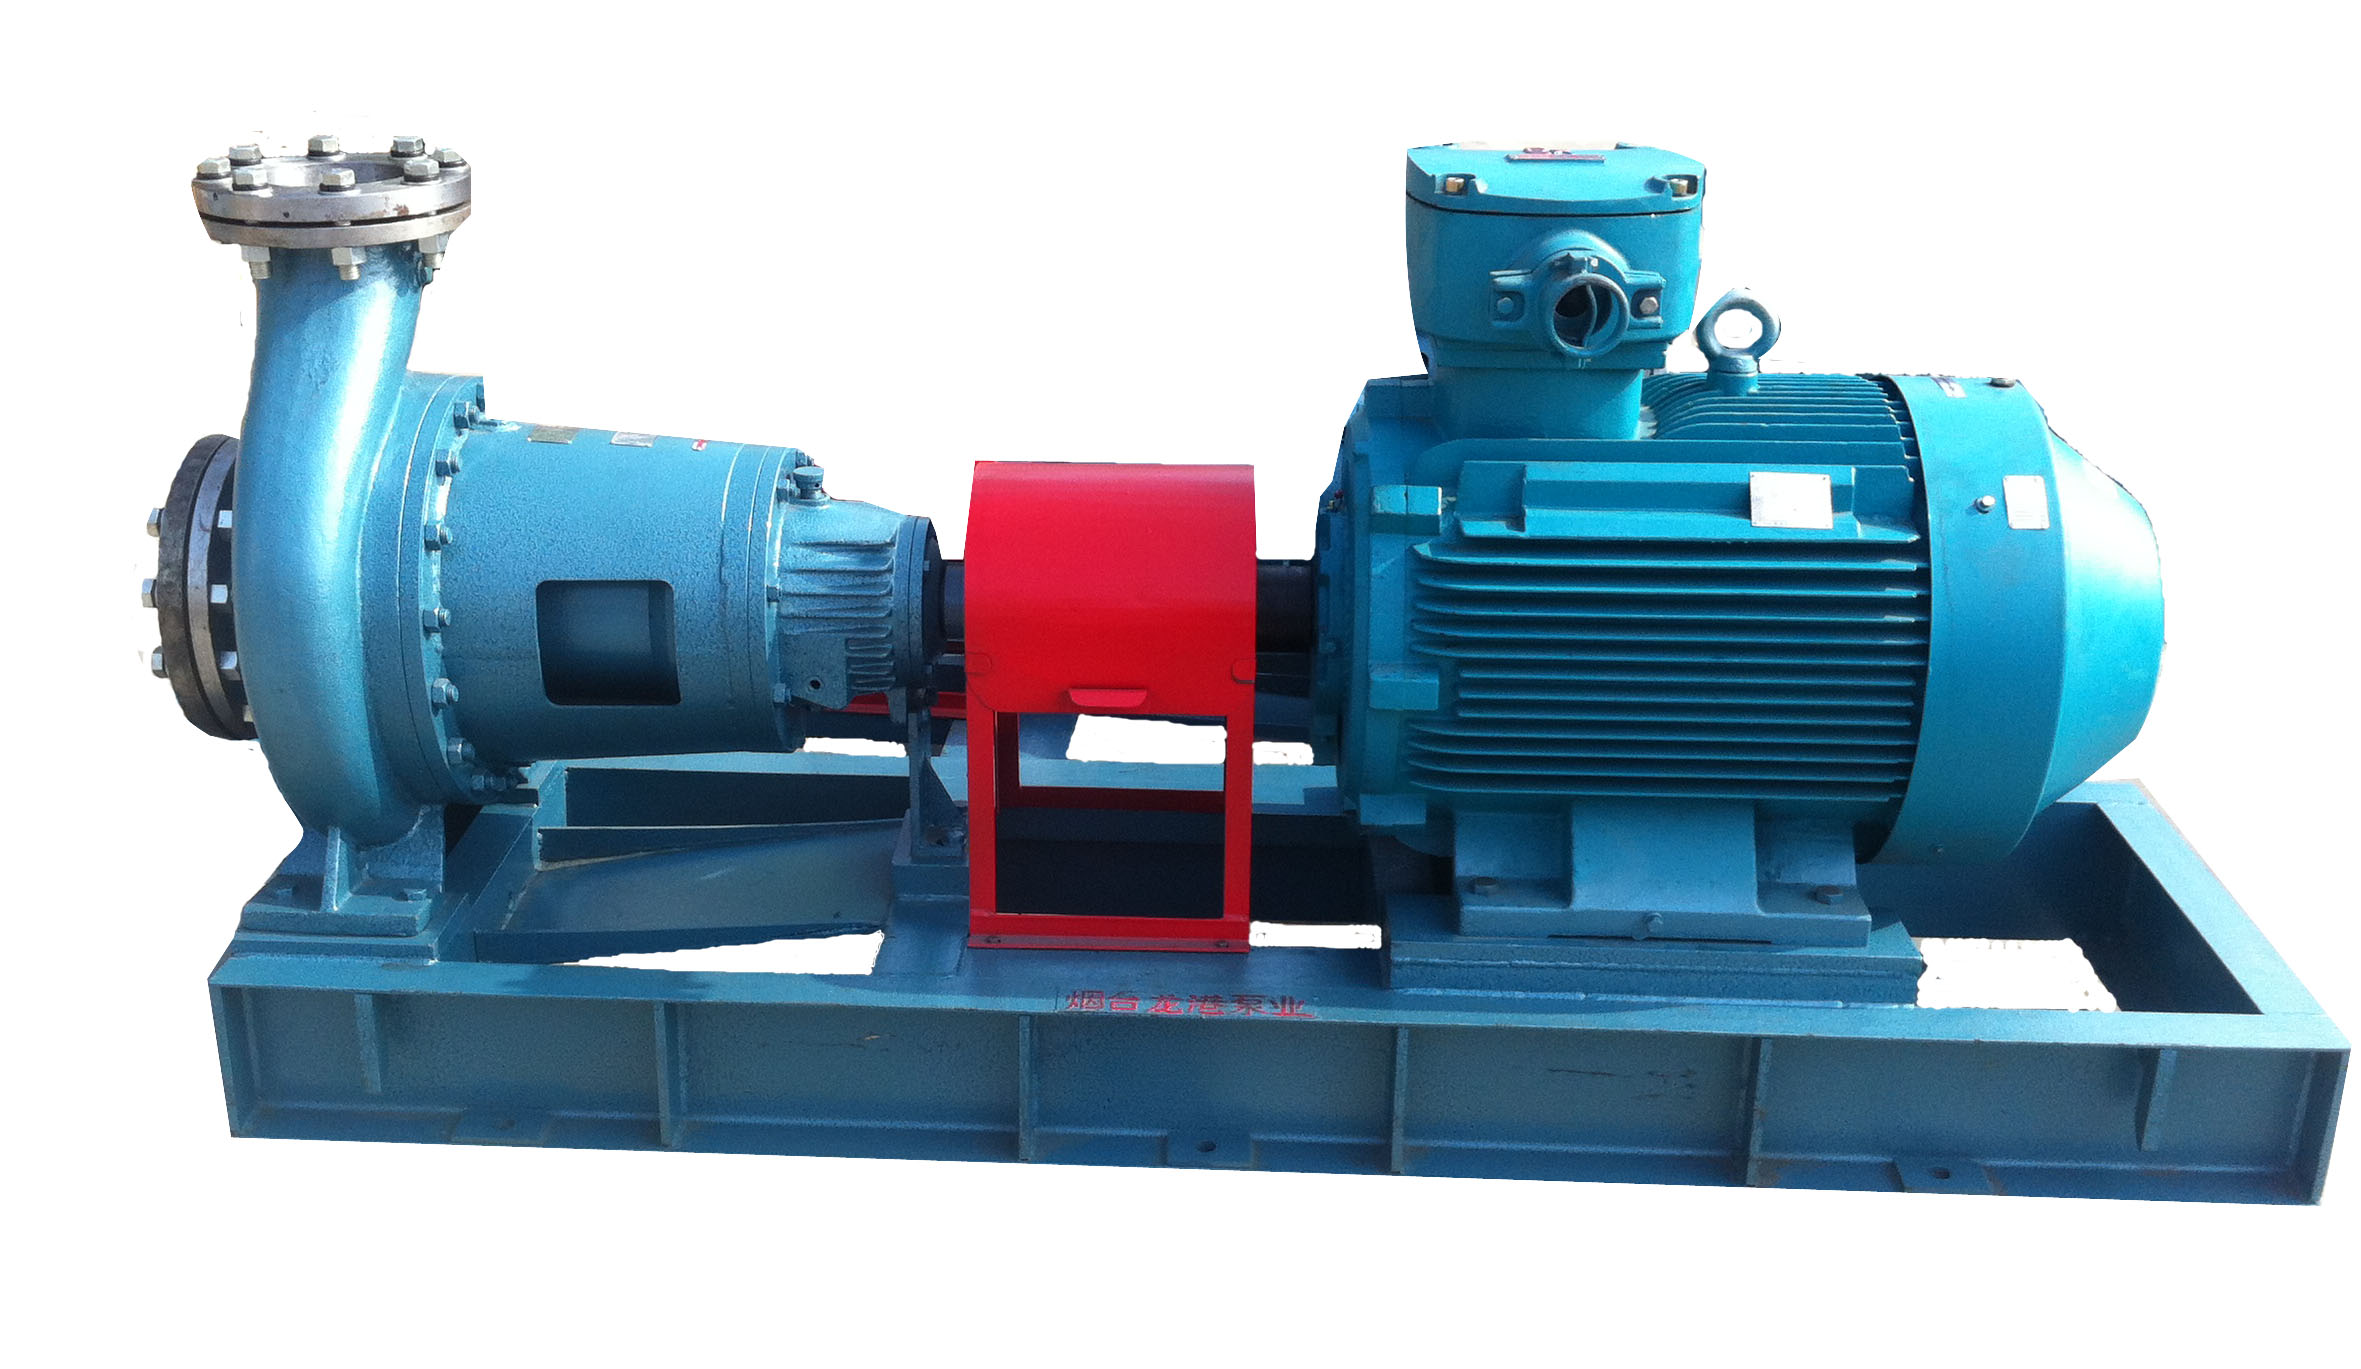 LCZQ series magnetic pump